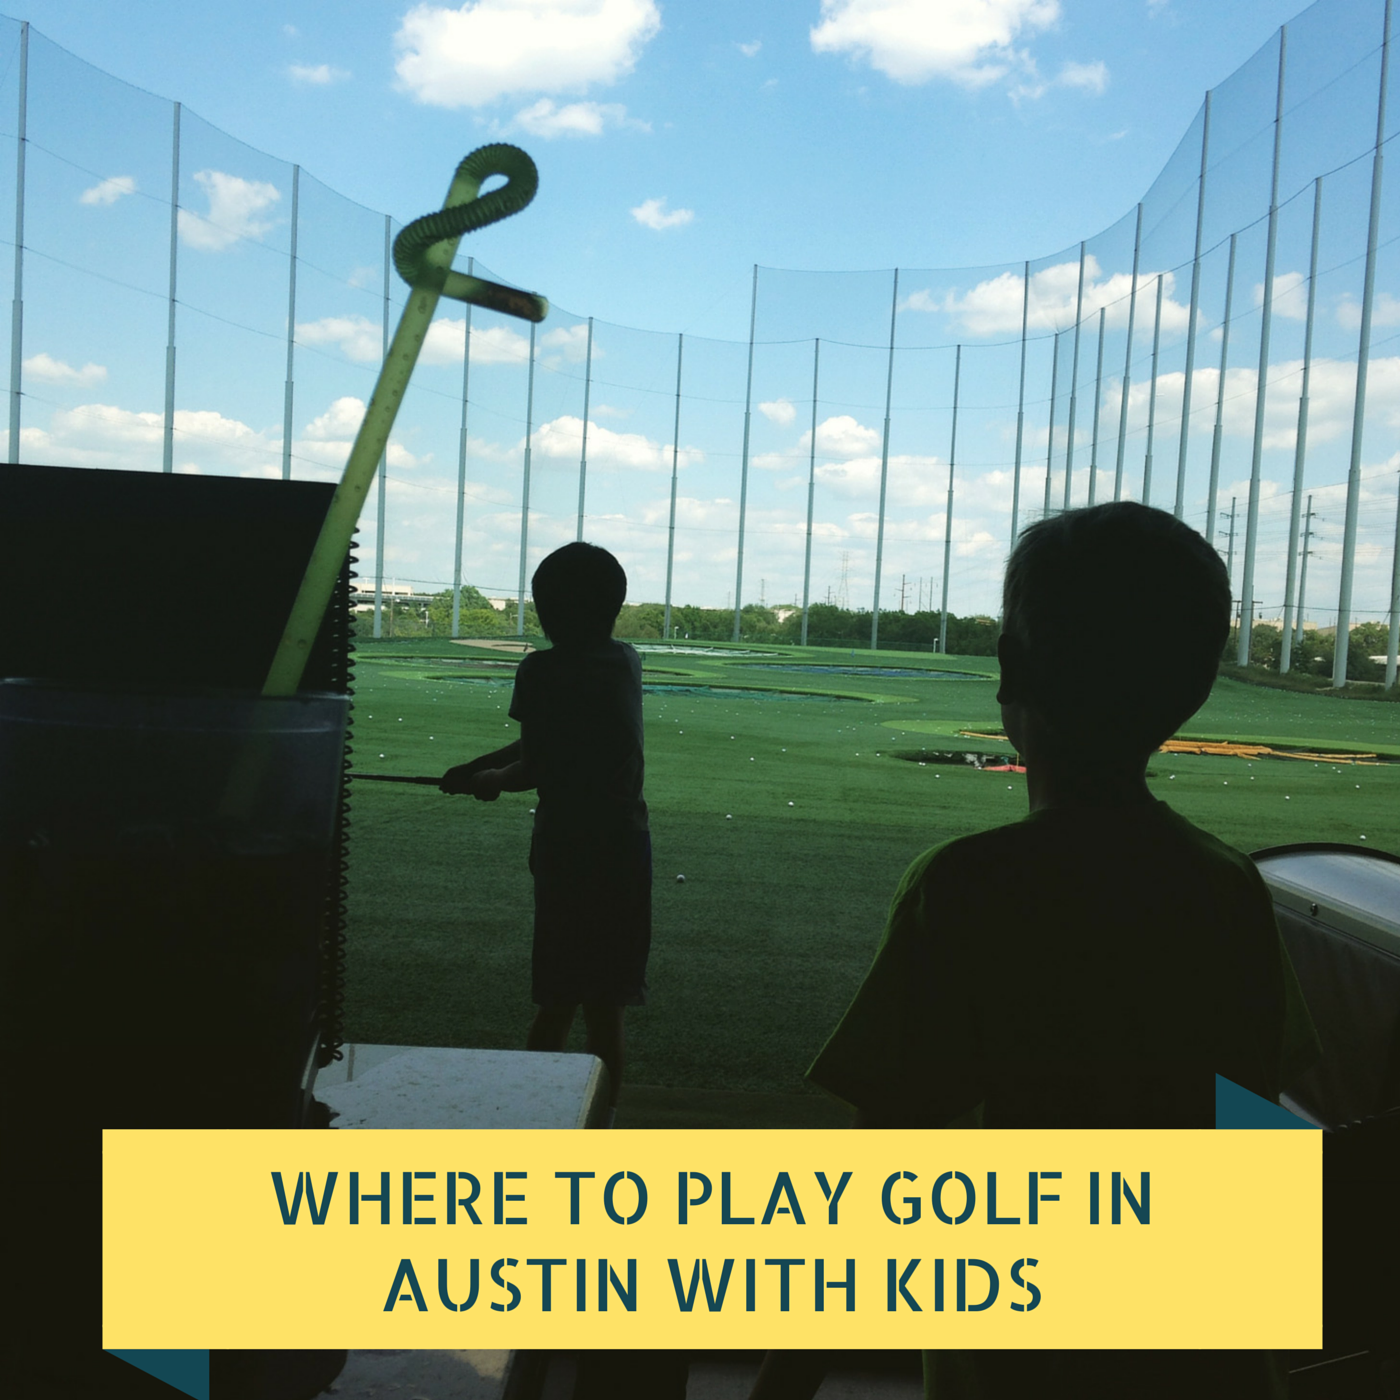 Places to Play Golf in Austin With Kids